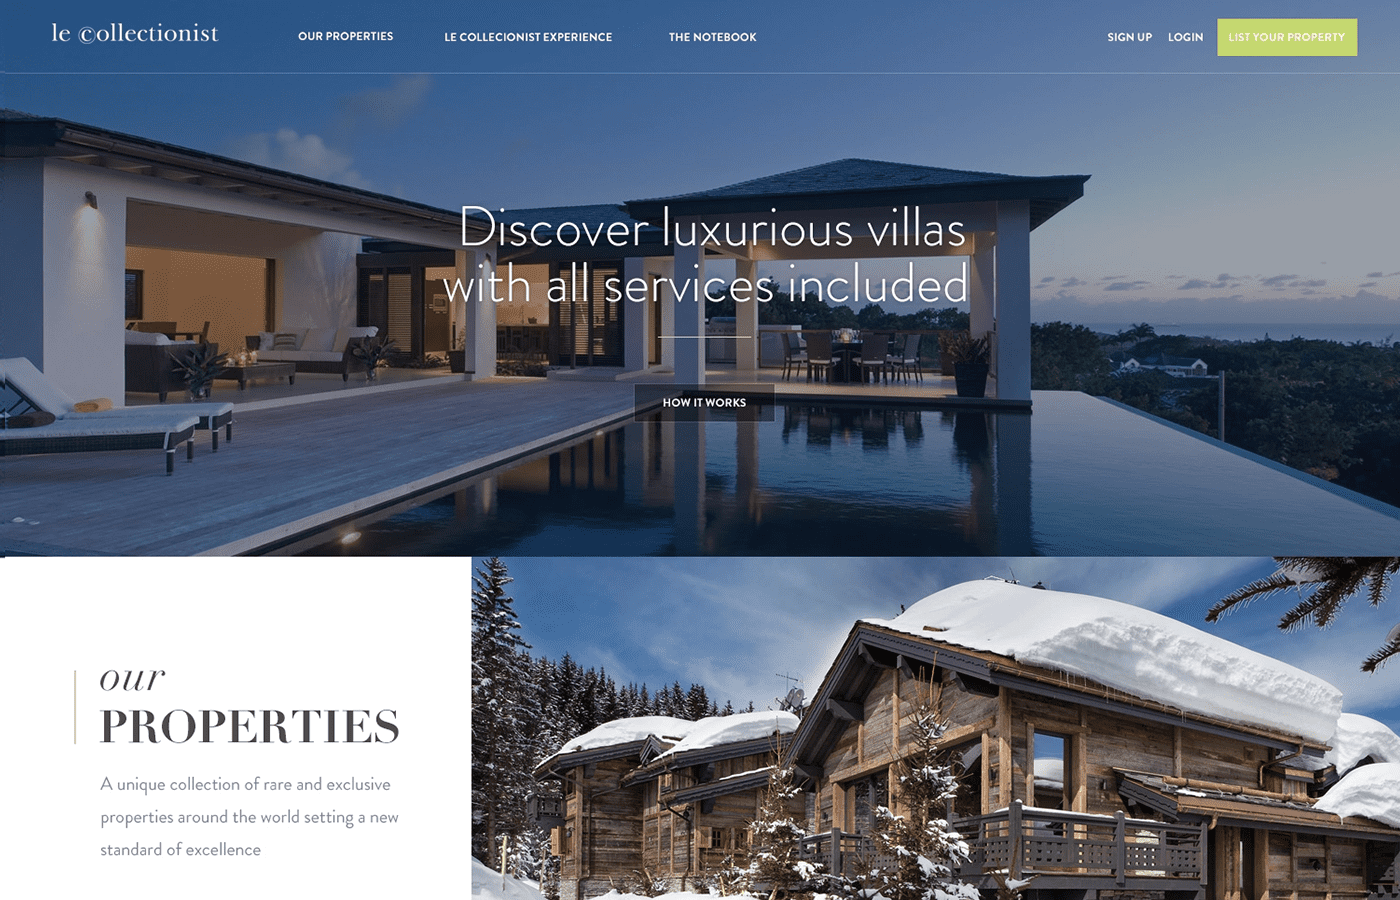 real estate website design example: Le collectionist